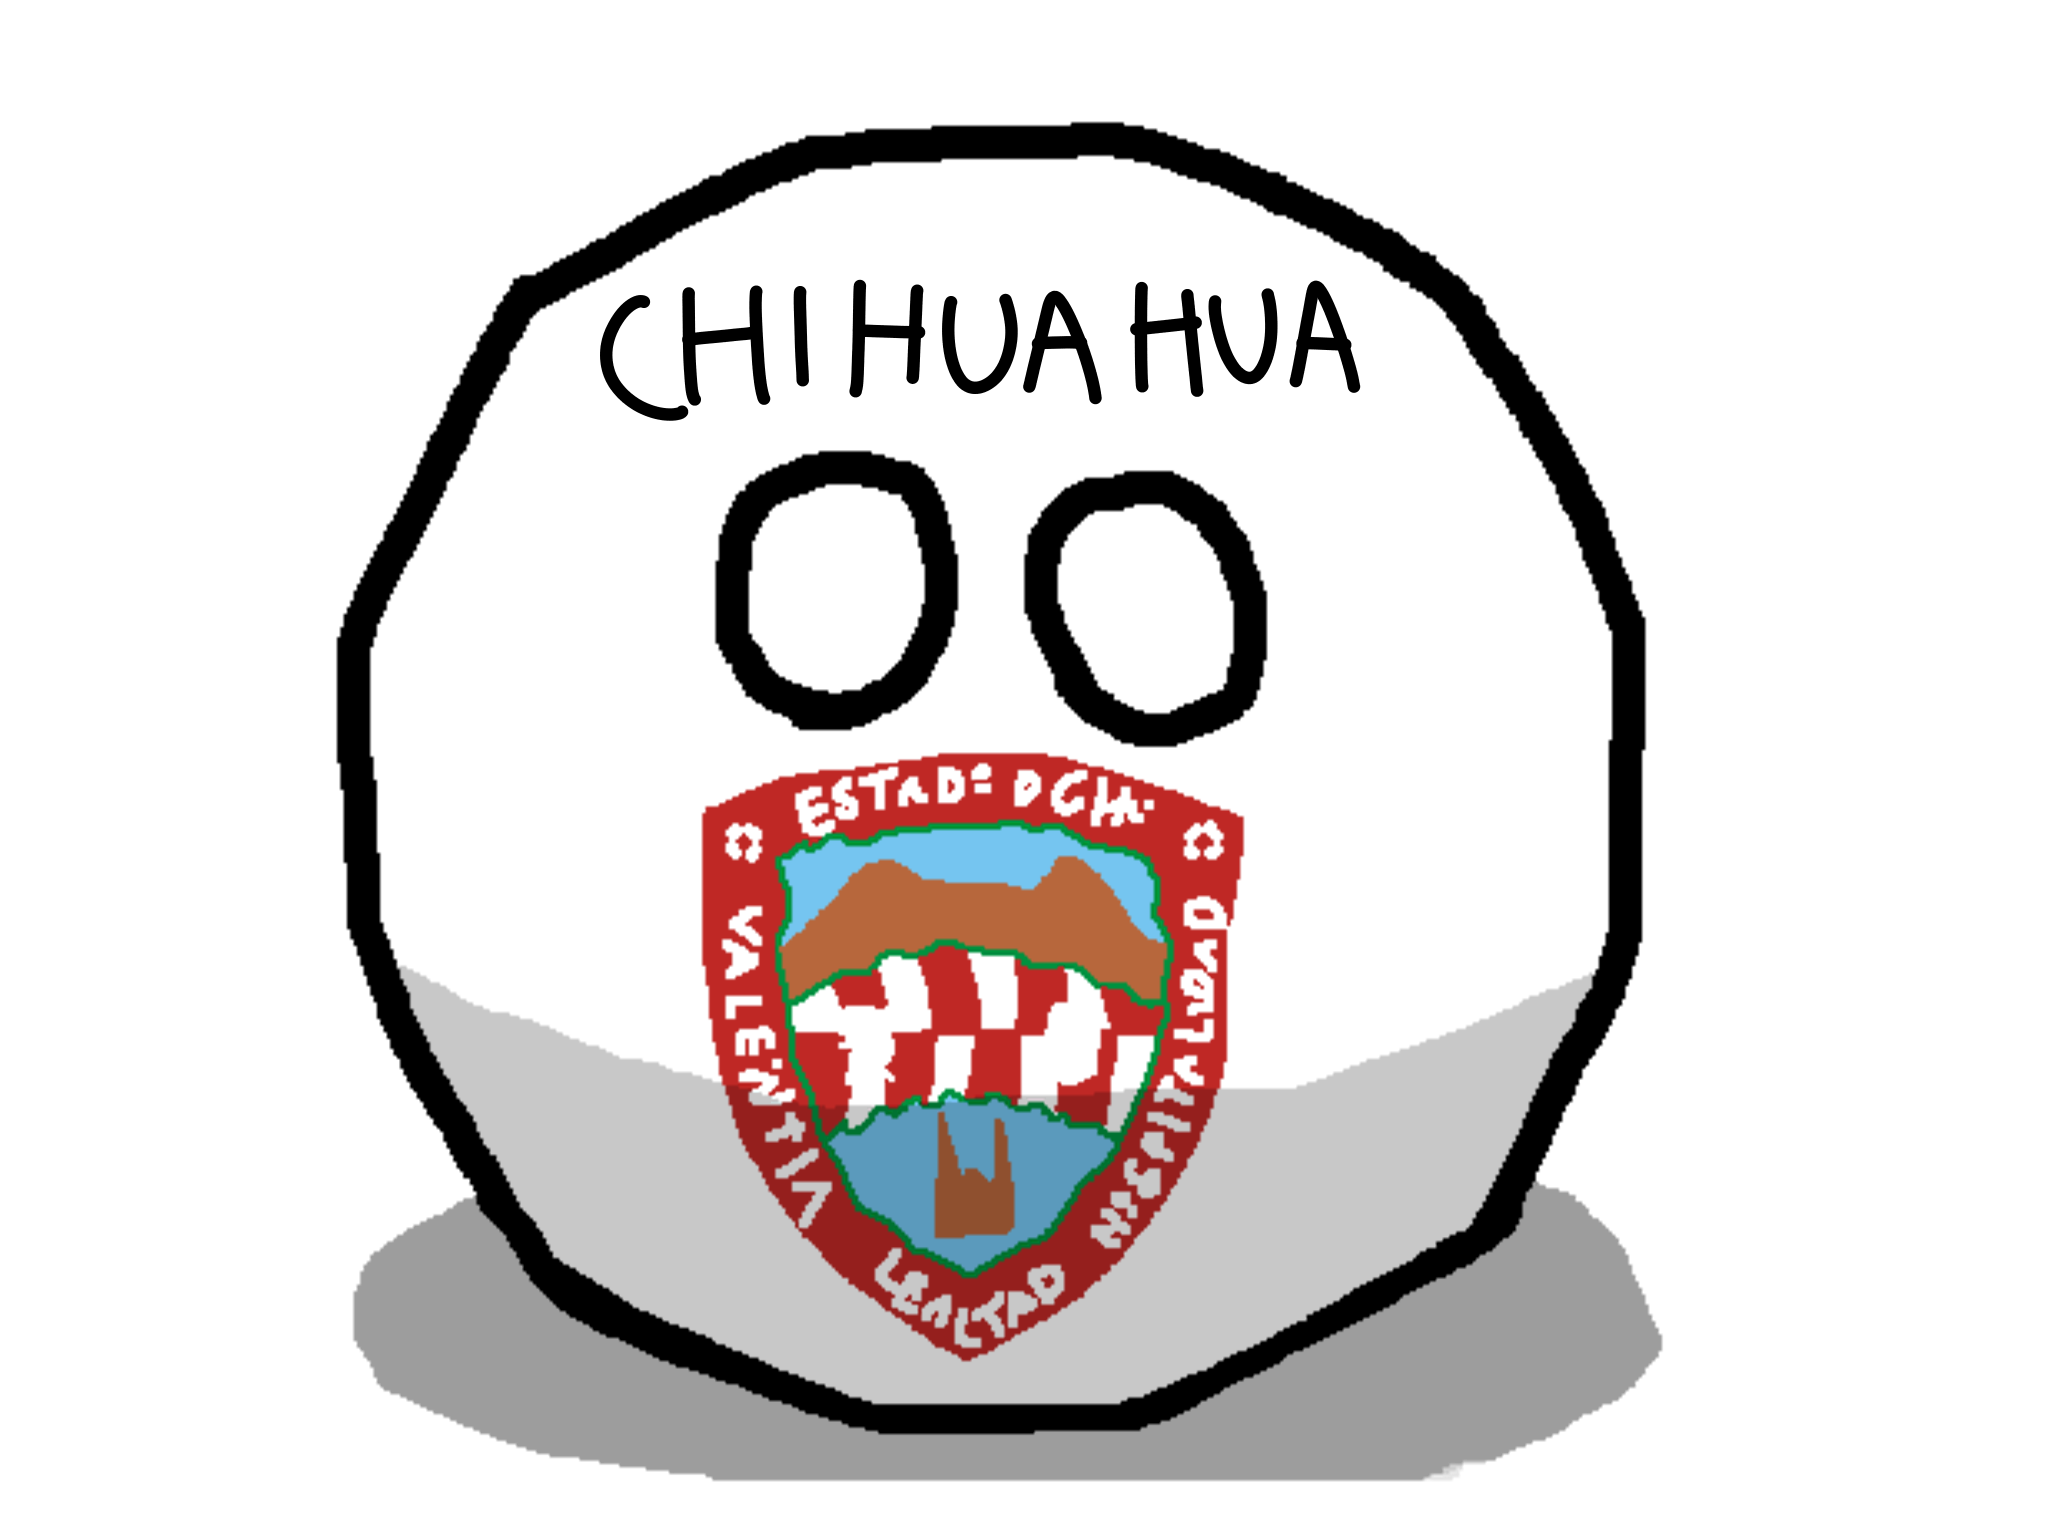 Chihuahuaball (city)